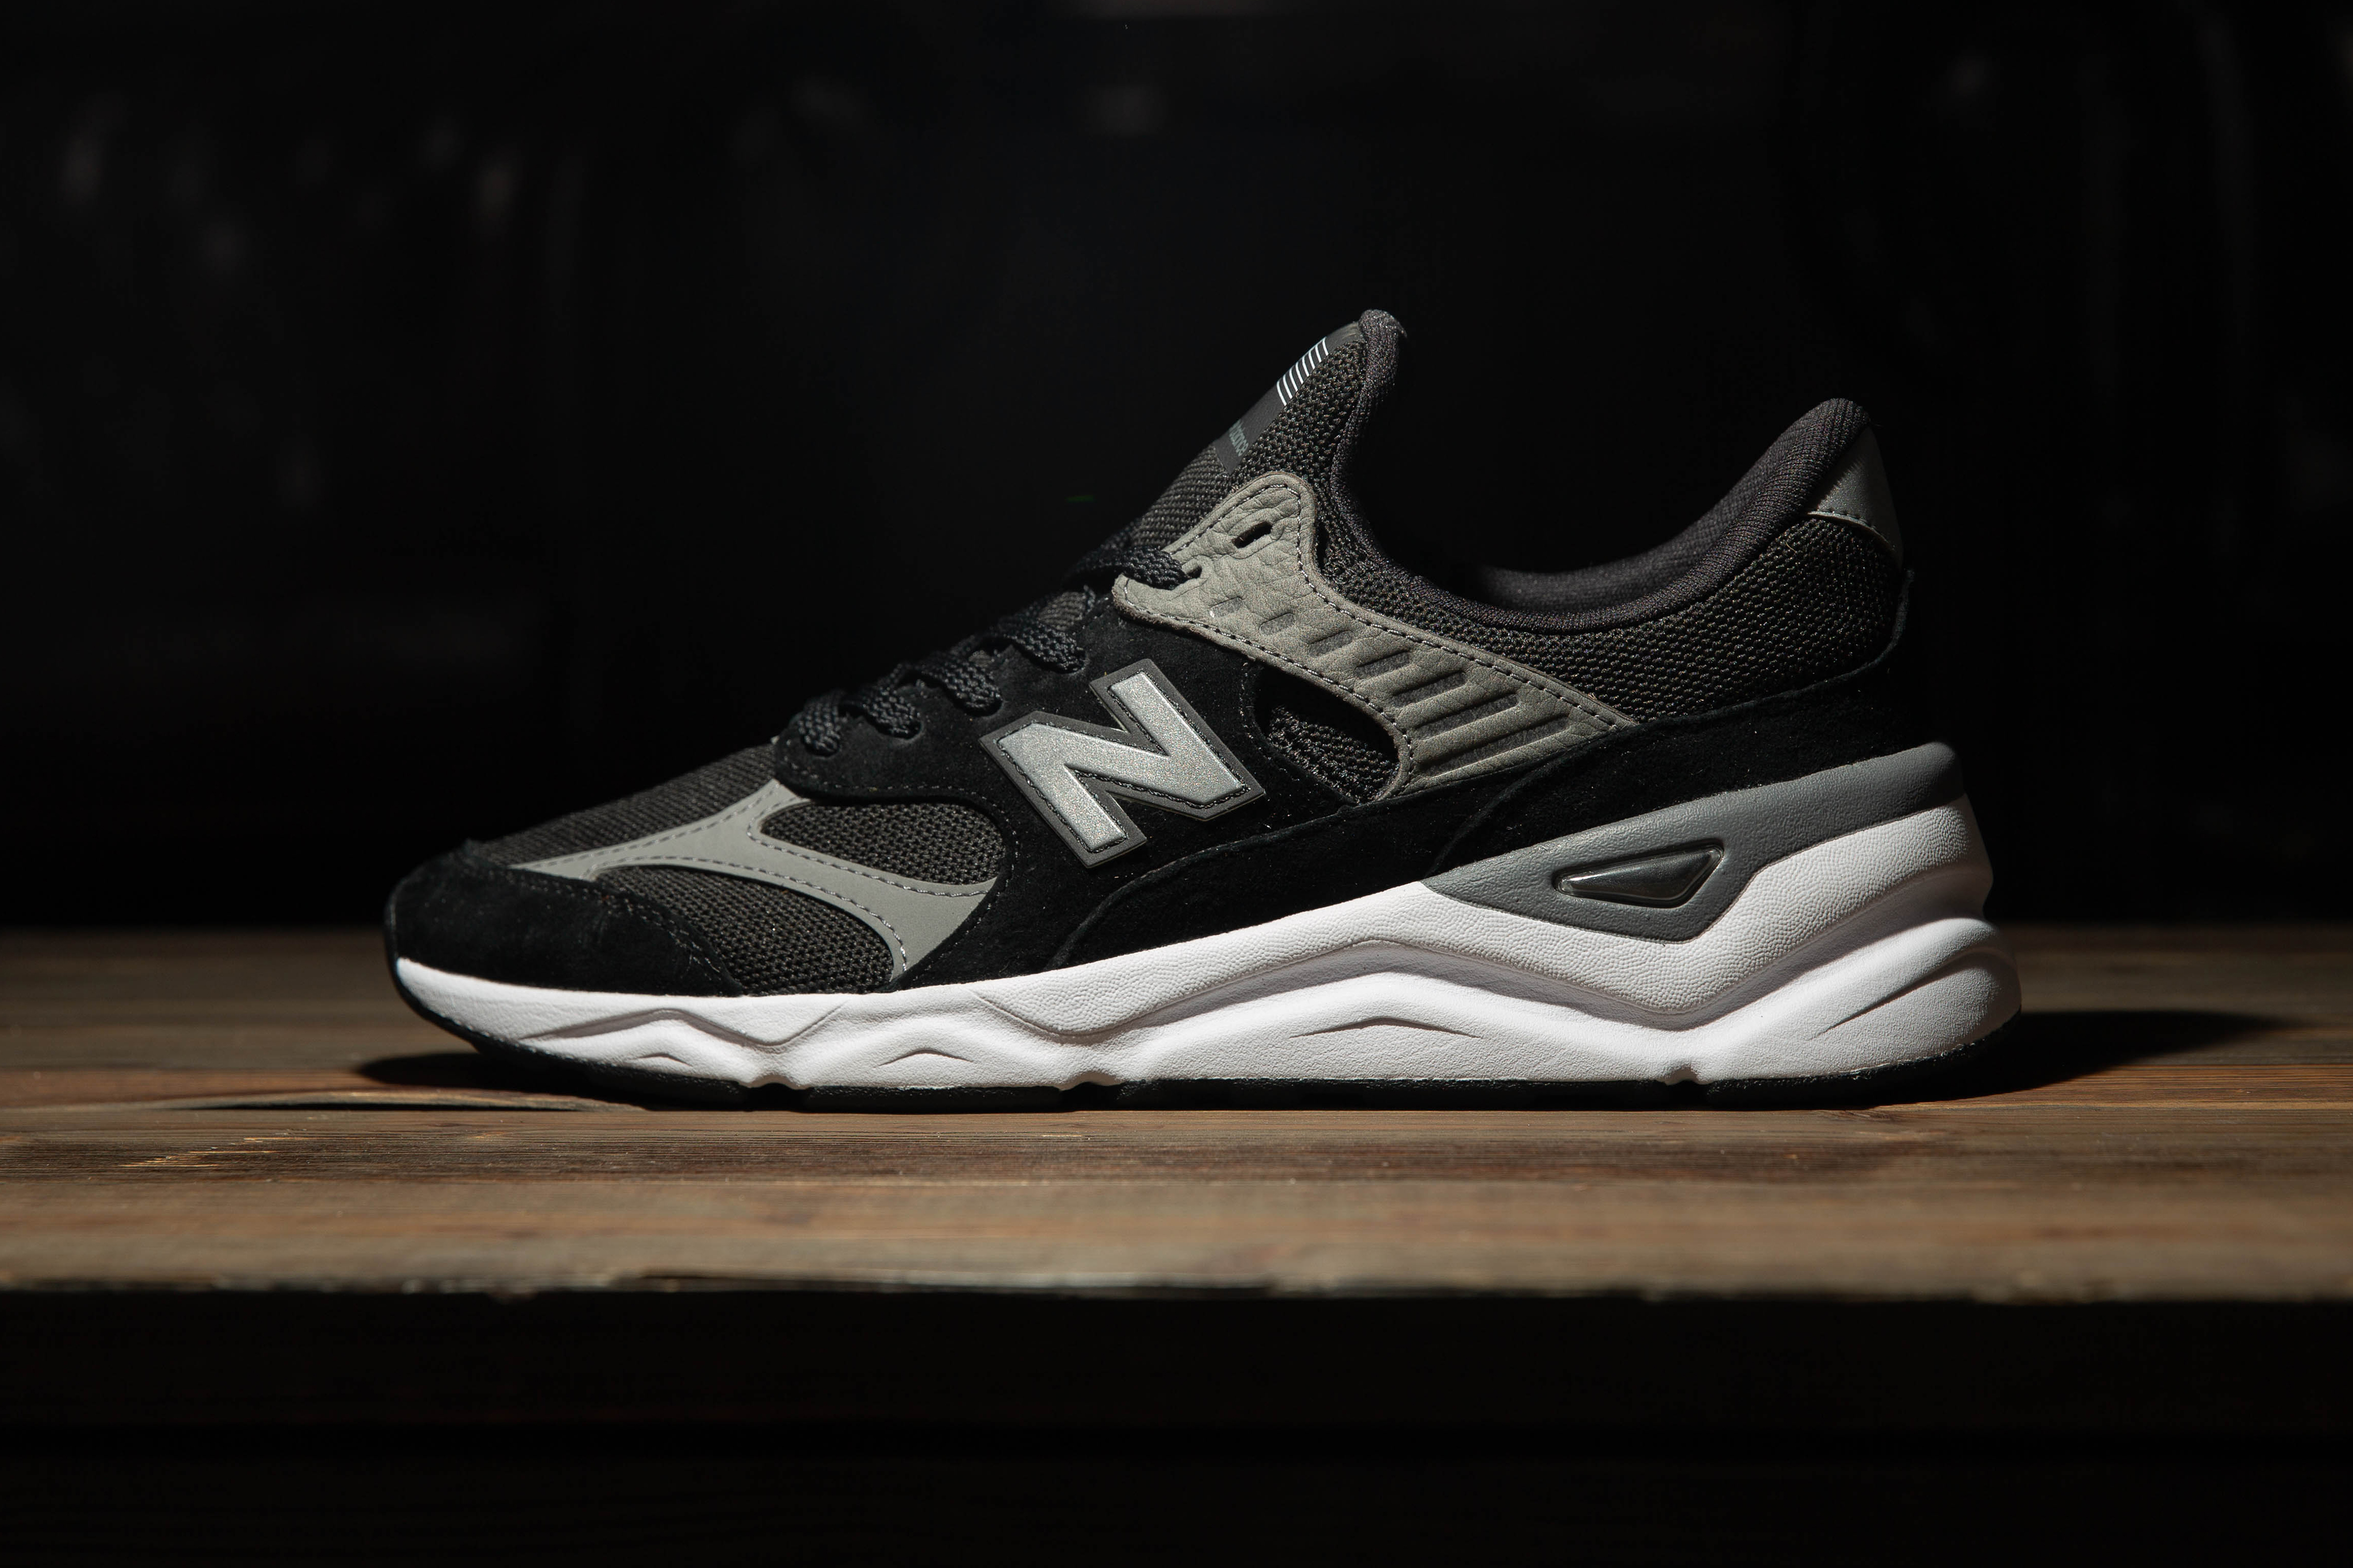 The New Balance X-90 Reconstructed, available in four new colourways